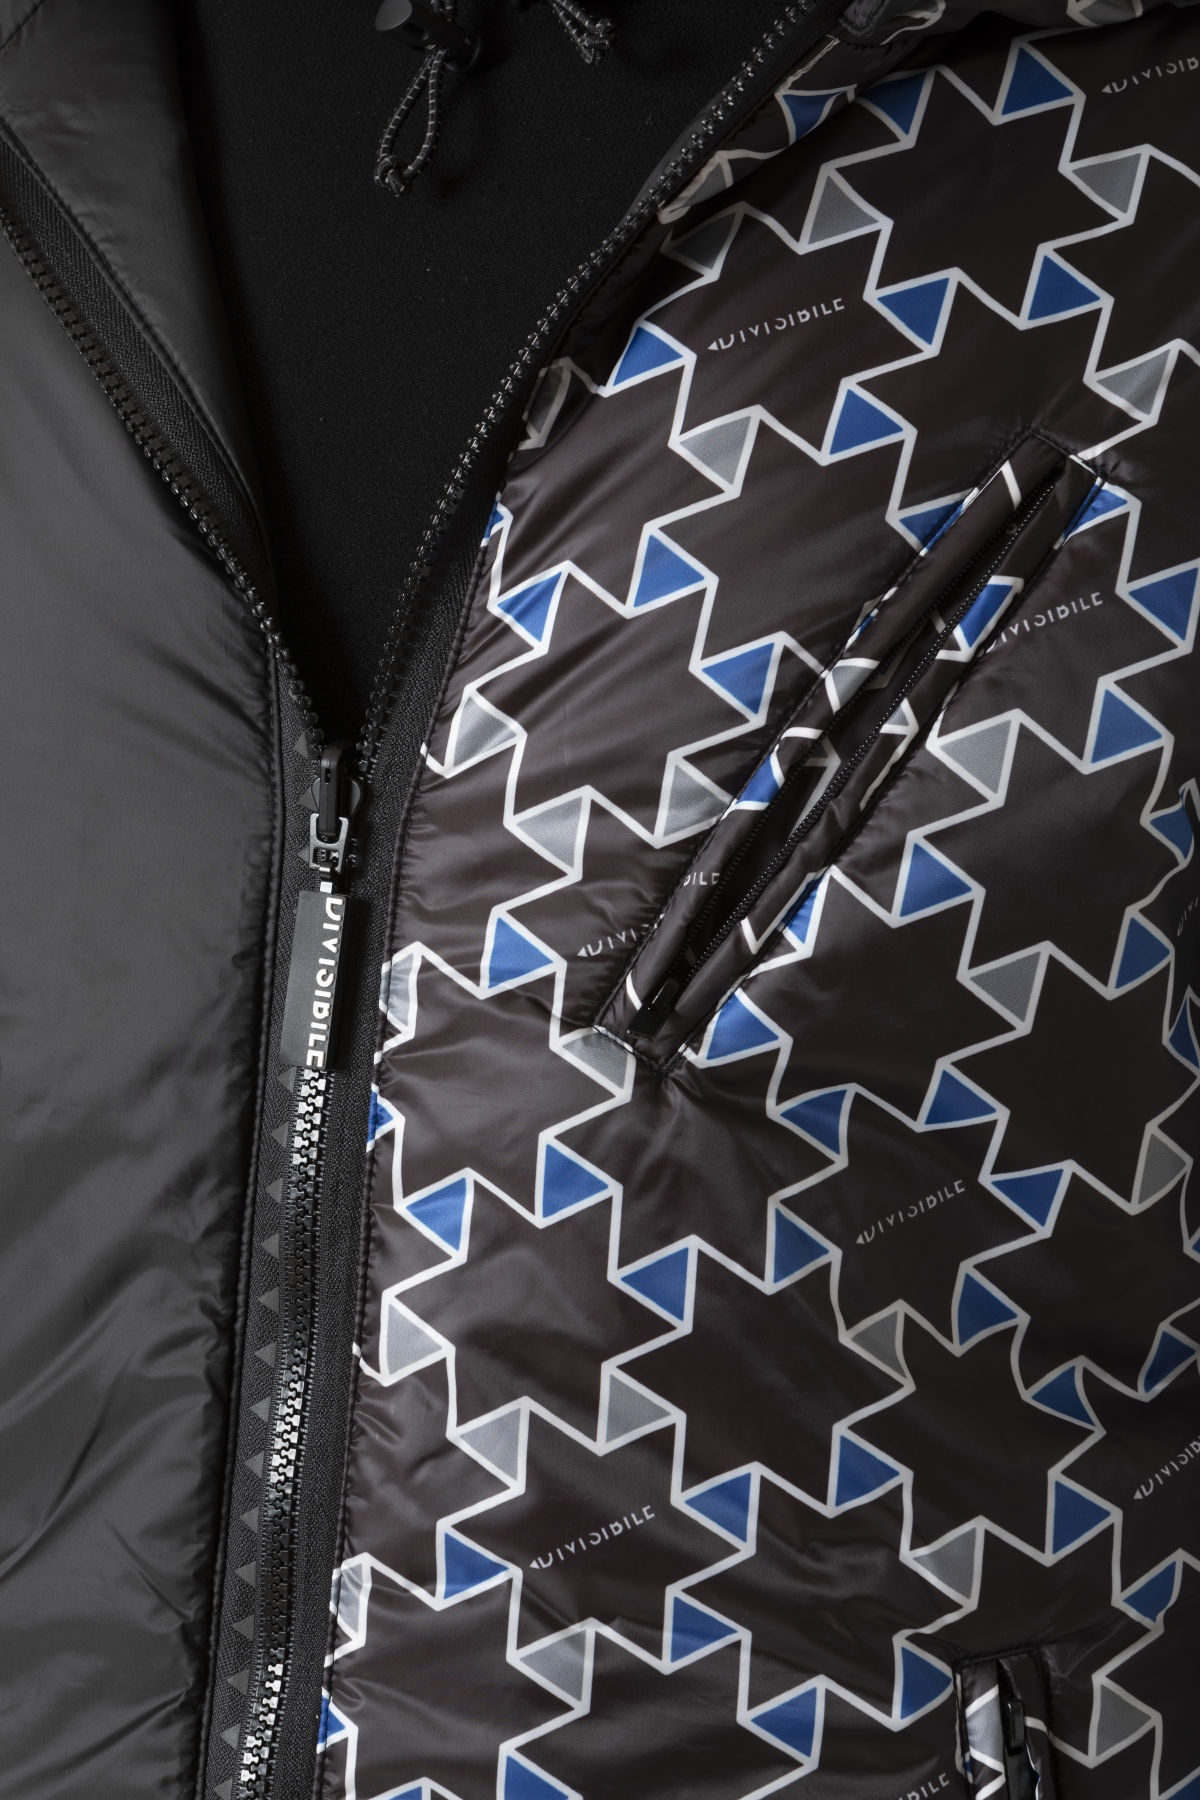 Jacket for man DIVISIBILE F/W